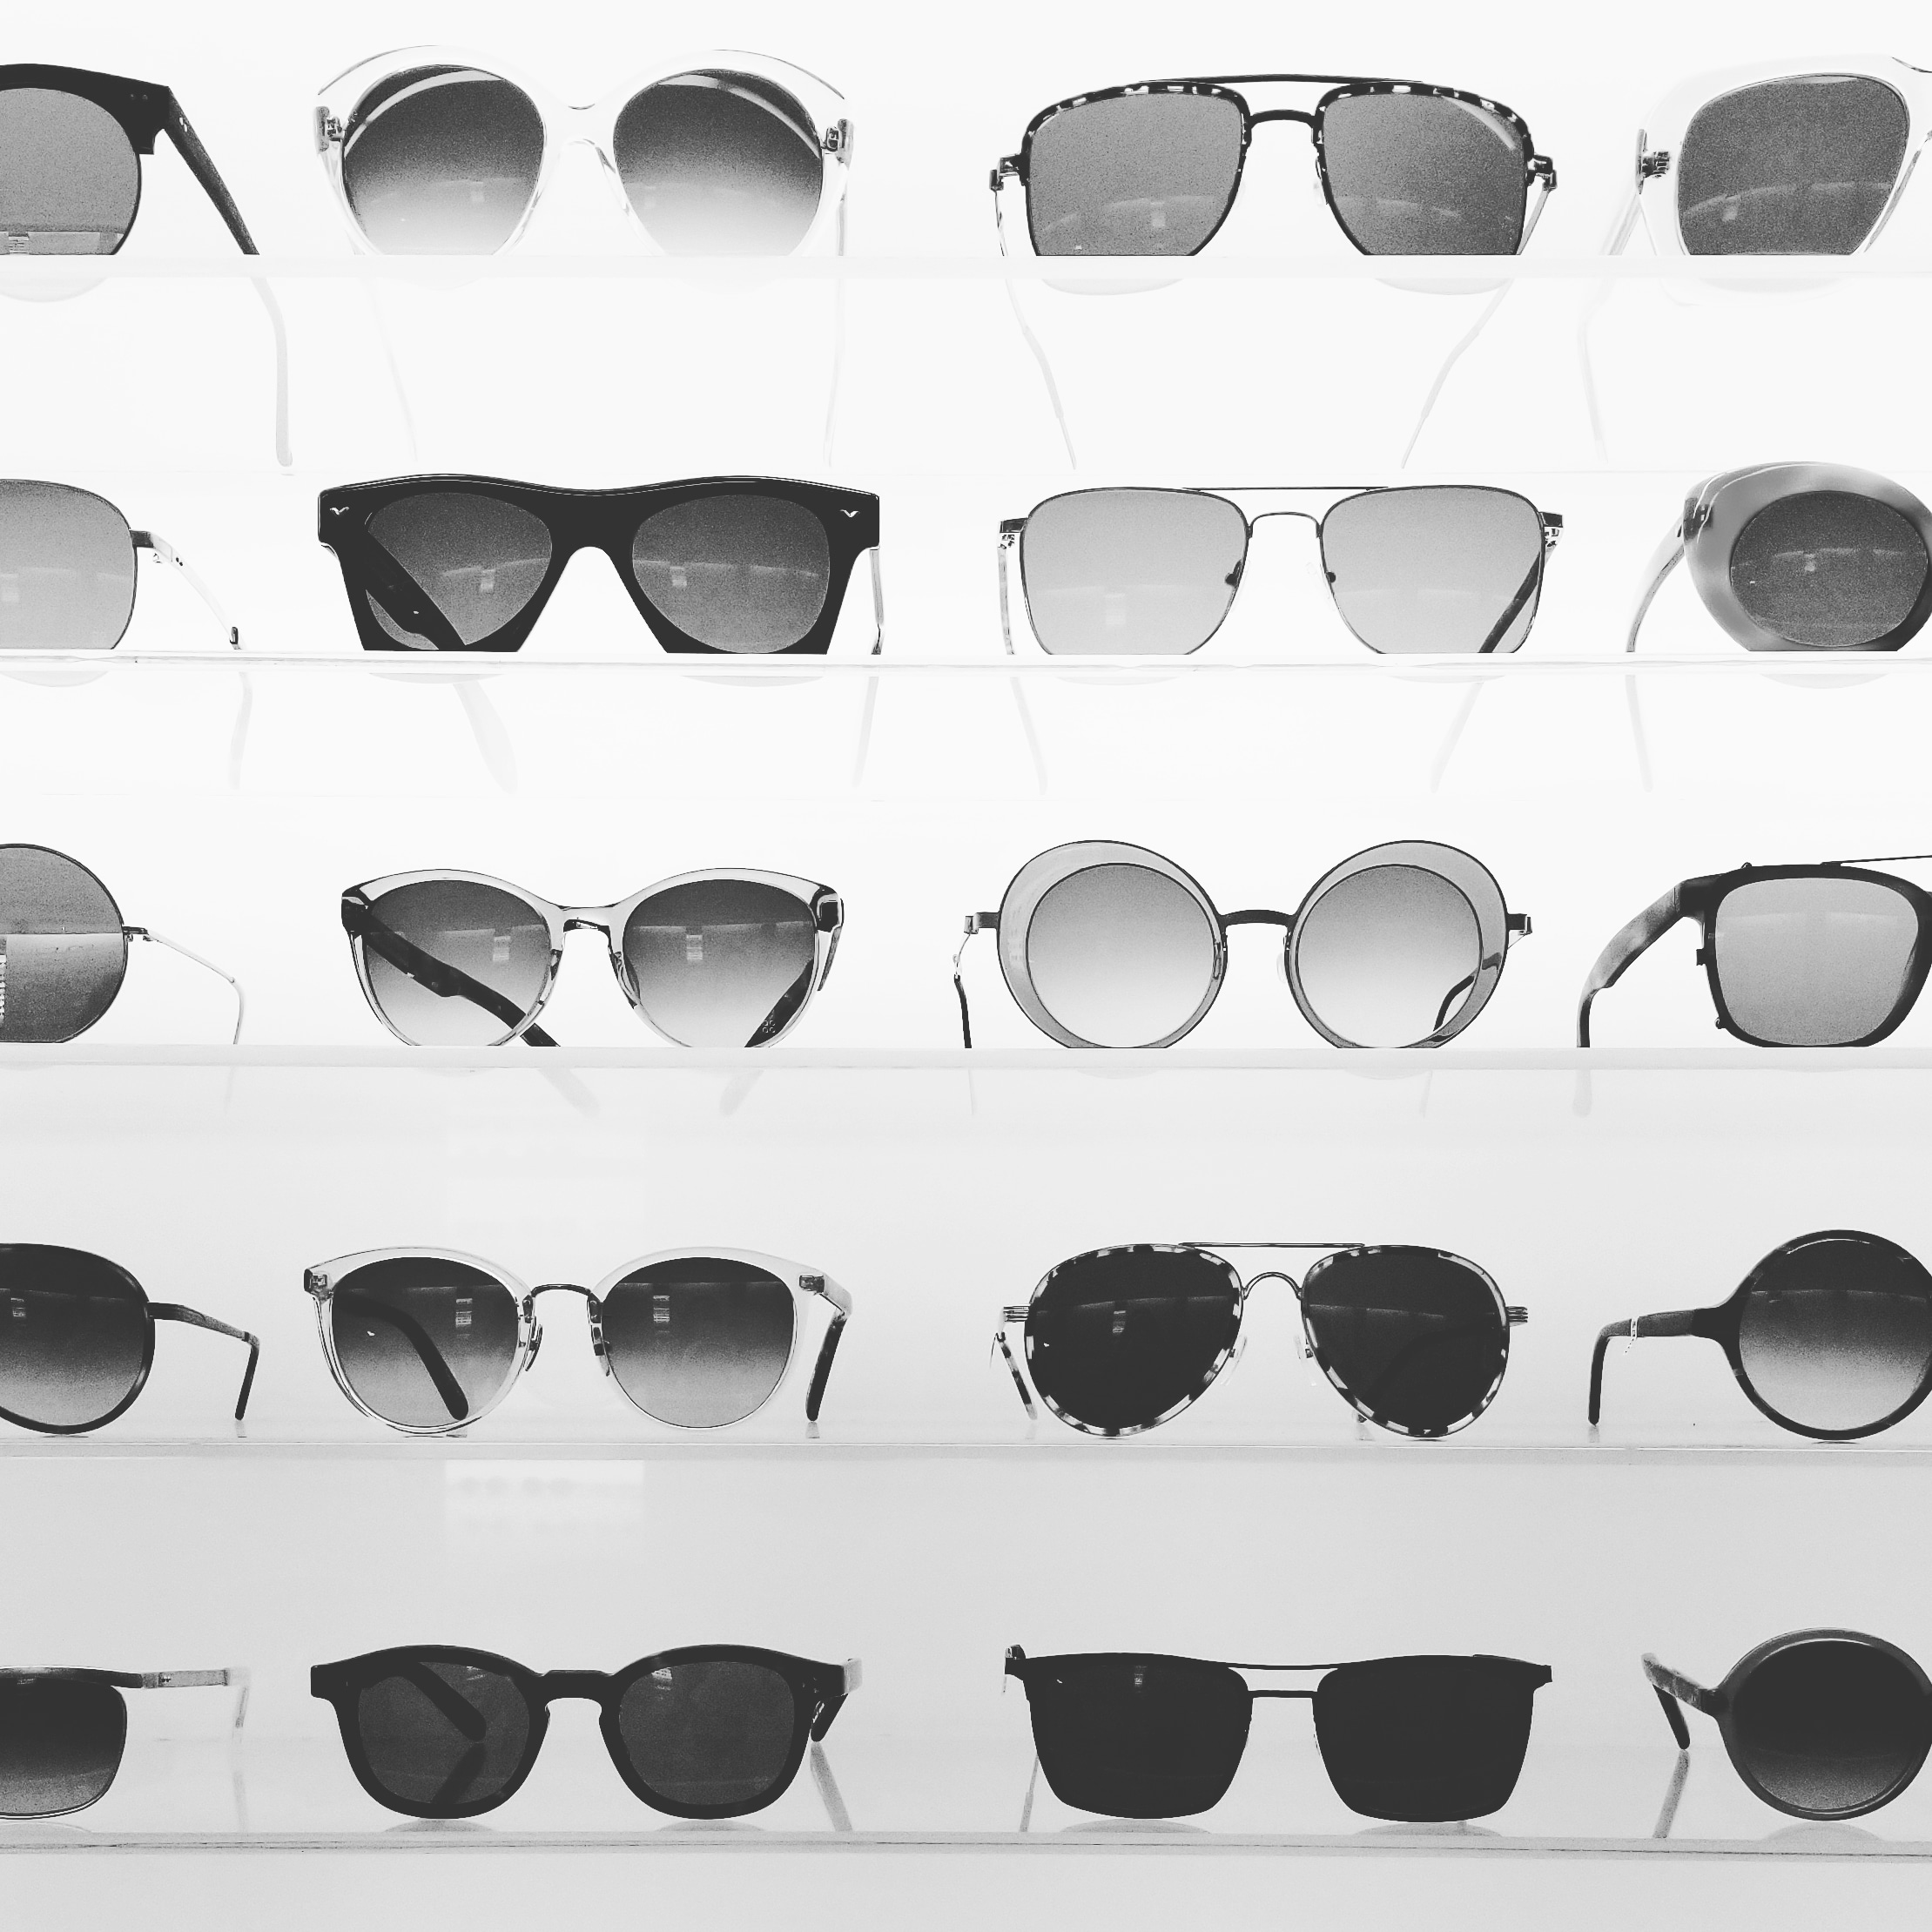 5ef7c7dfac7a We are so proud and excited to see Opticianado named for the best  sunglasses in Toronto by BlogTO! You re making us blush. Our inventory is  curated with ...